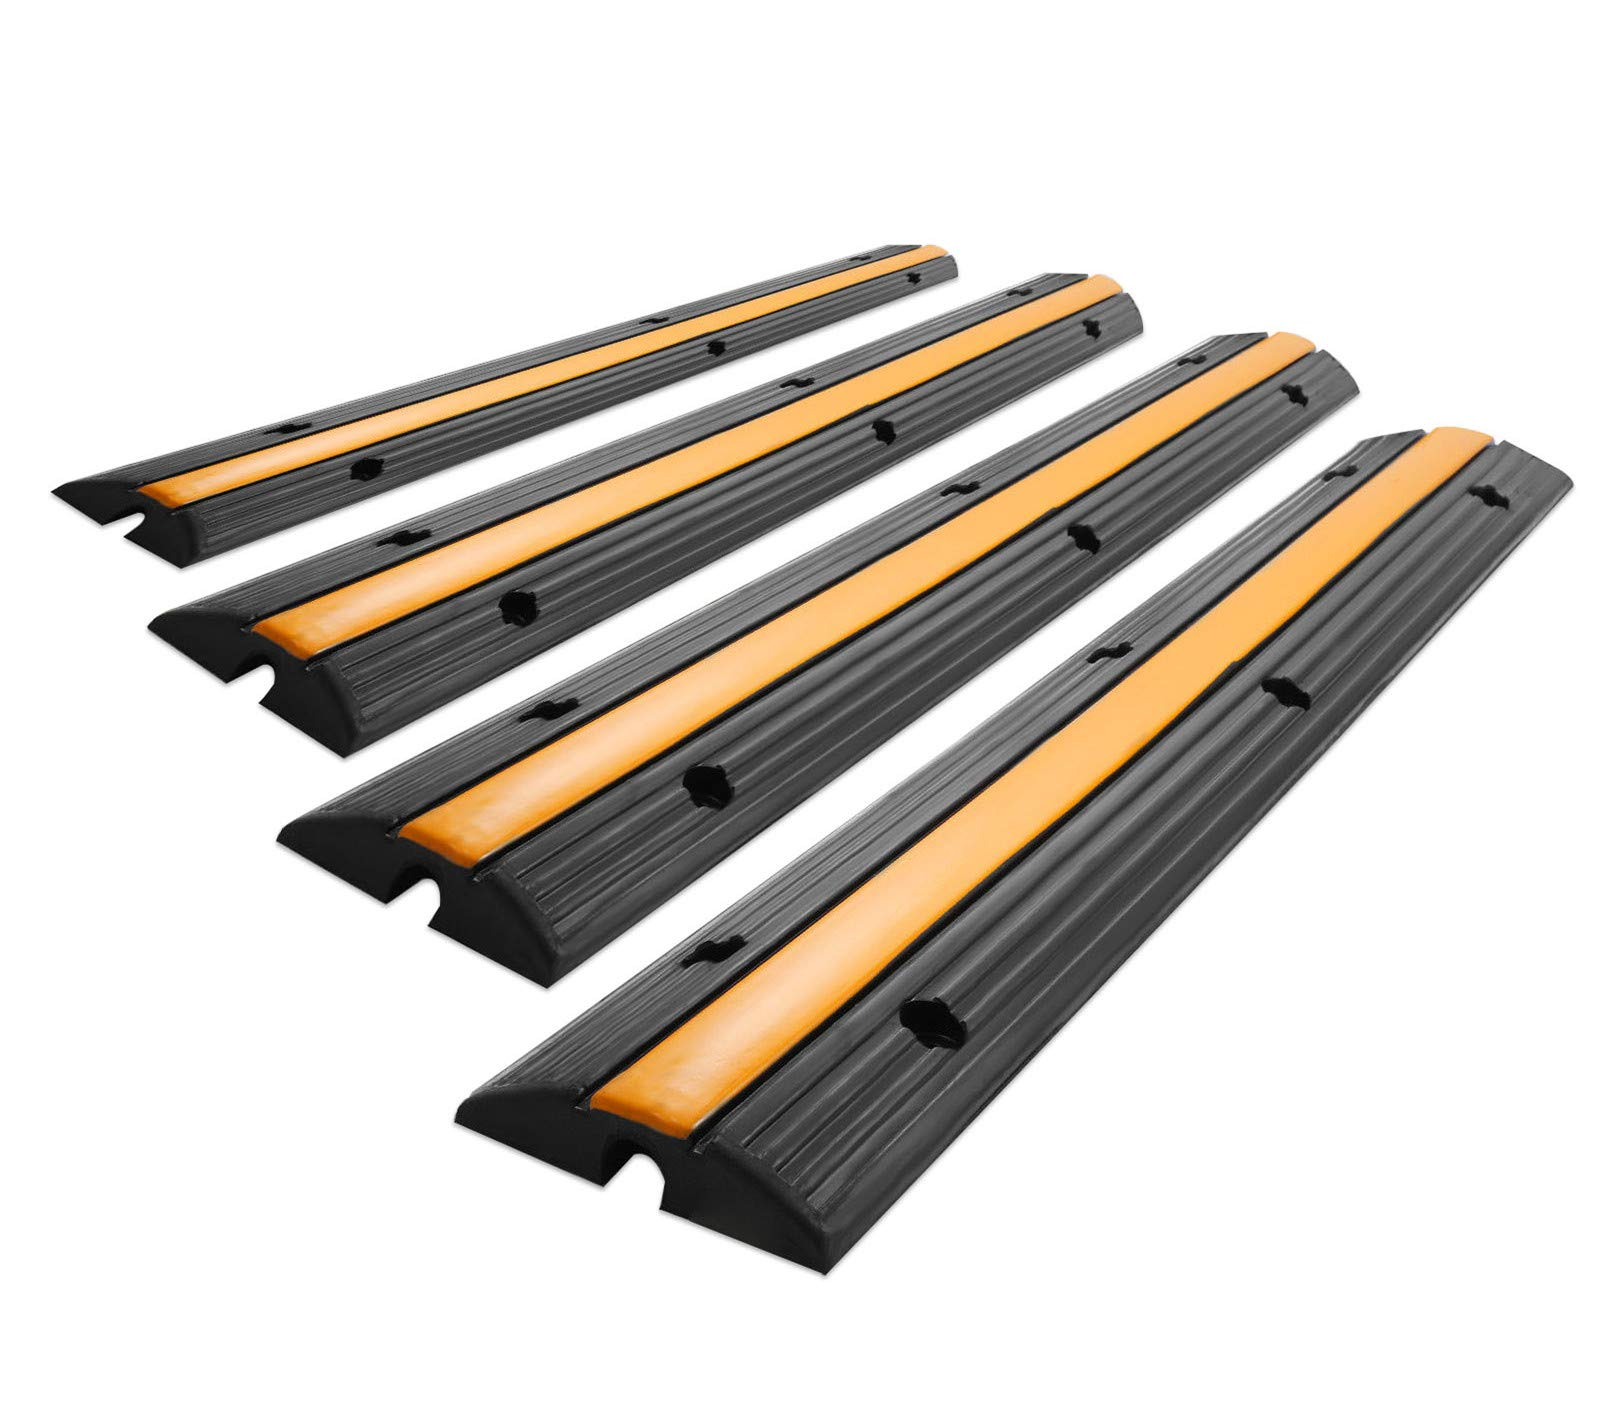 SHZOND Extreme Rubber Single Channel Cable Protector Cable Ramps/Protectors Cable Ramp Cover 4 Pack Cable Protector Ramp Capacity 18000lbs Rubber Speed Bump (4 Pack Single Channel)